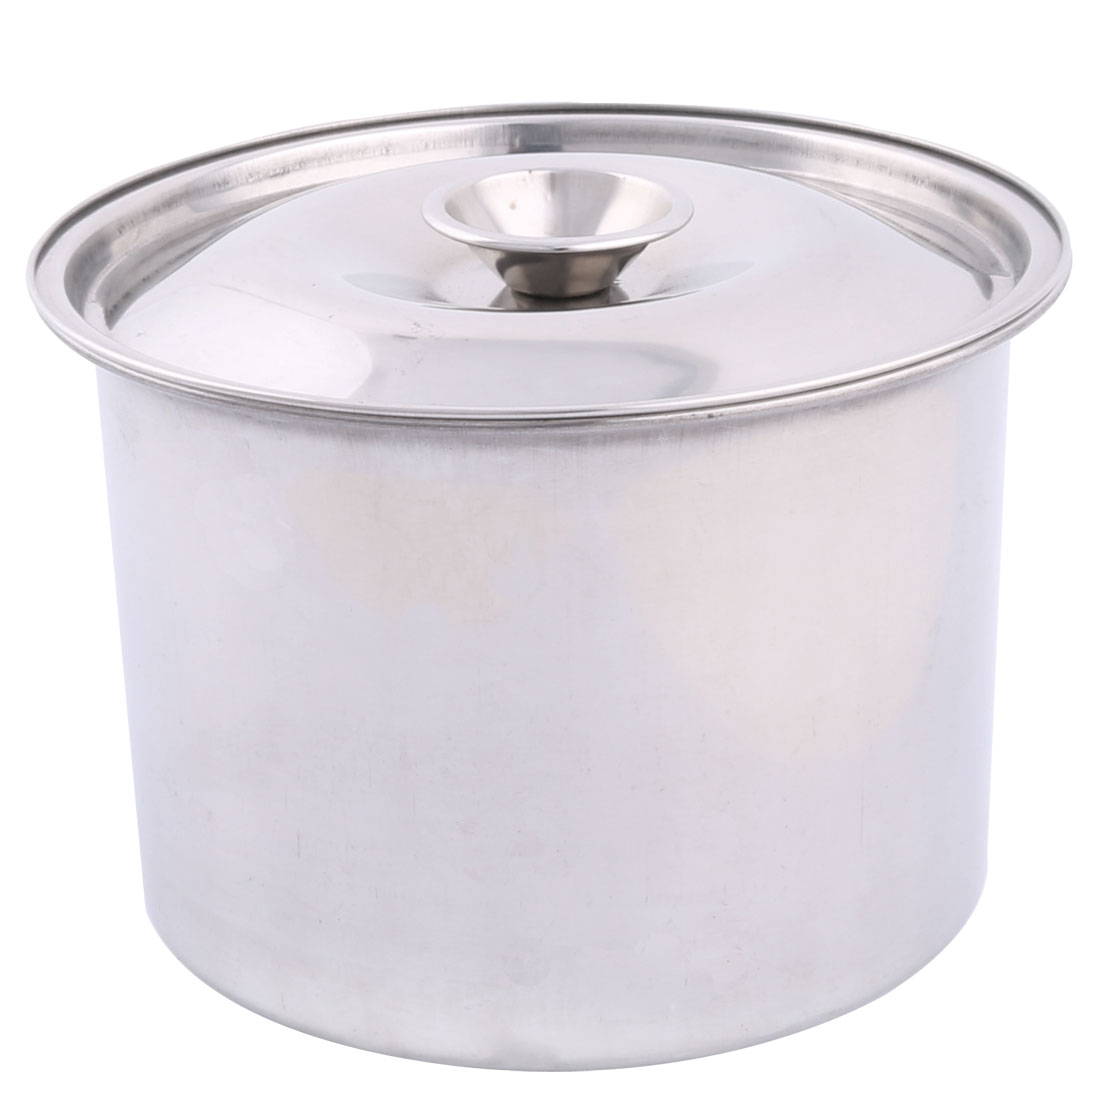 Kitchen Stainless Steel Food Soup Salad Egg Mixing Bowl Container 16cm Diameter